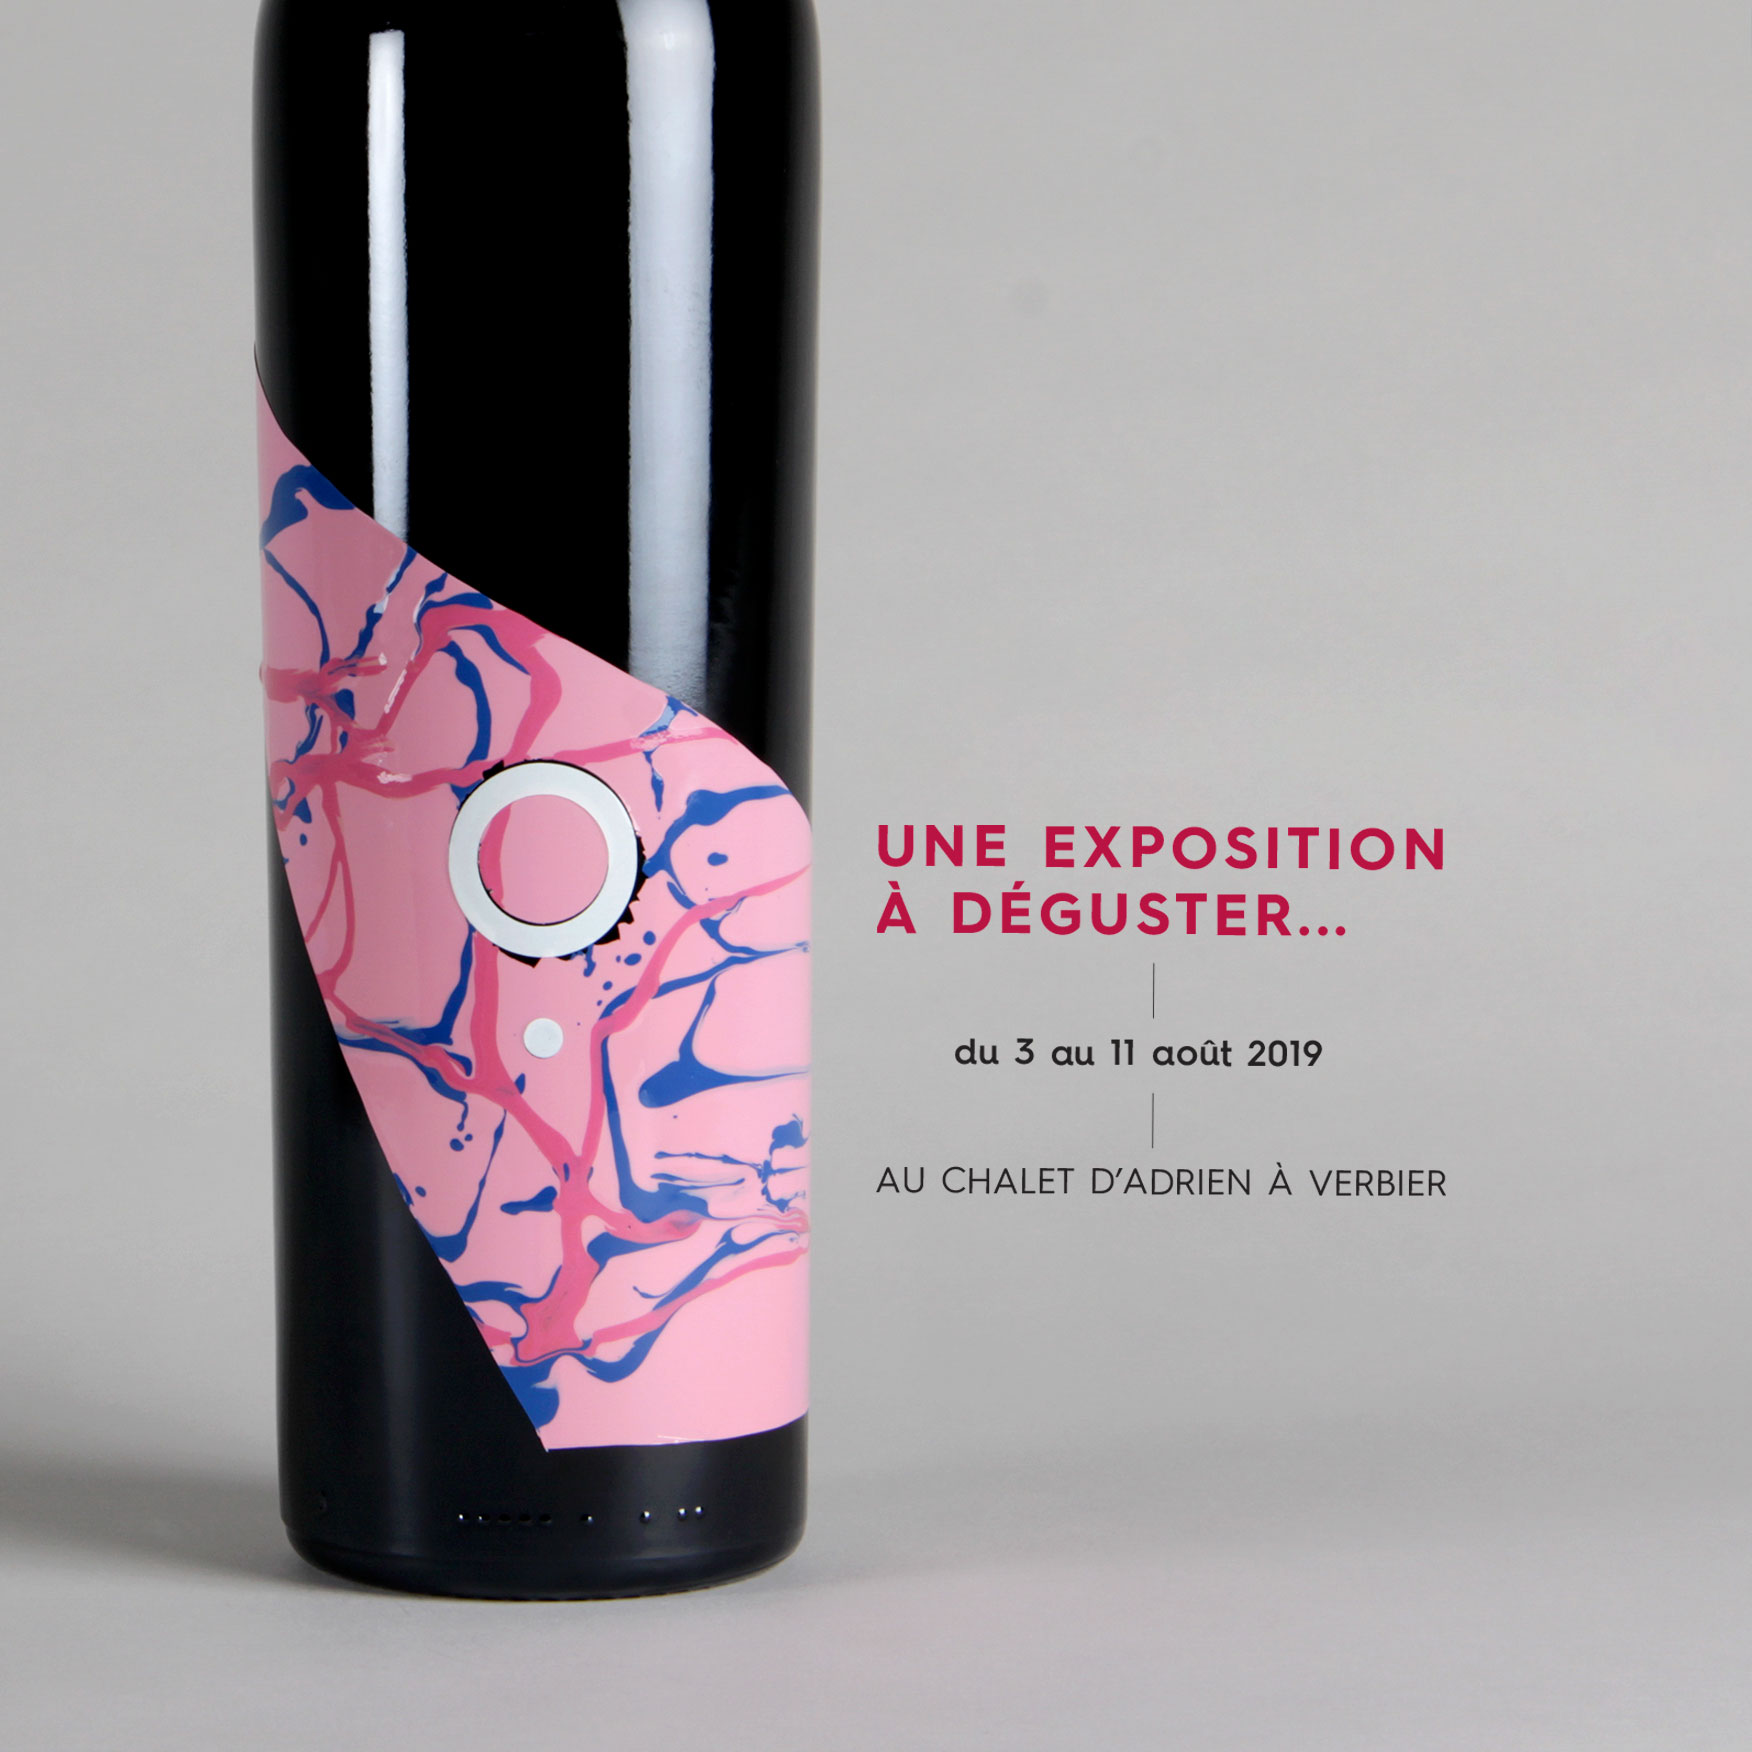 « Art and wine » à Verbier